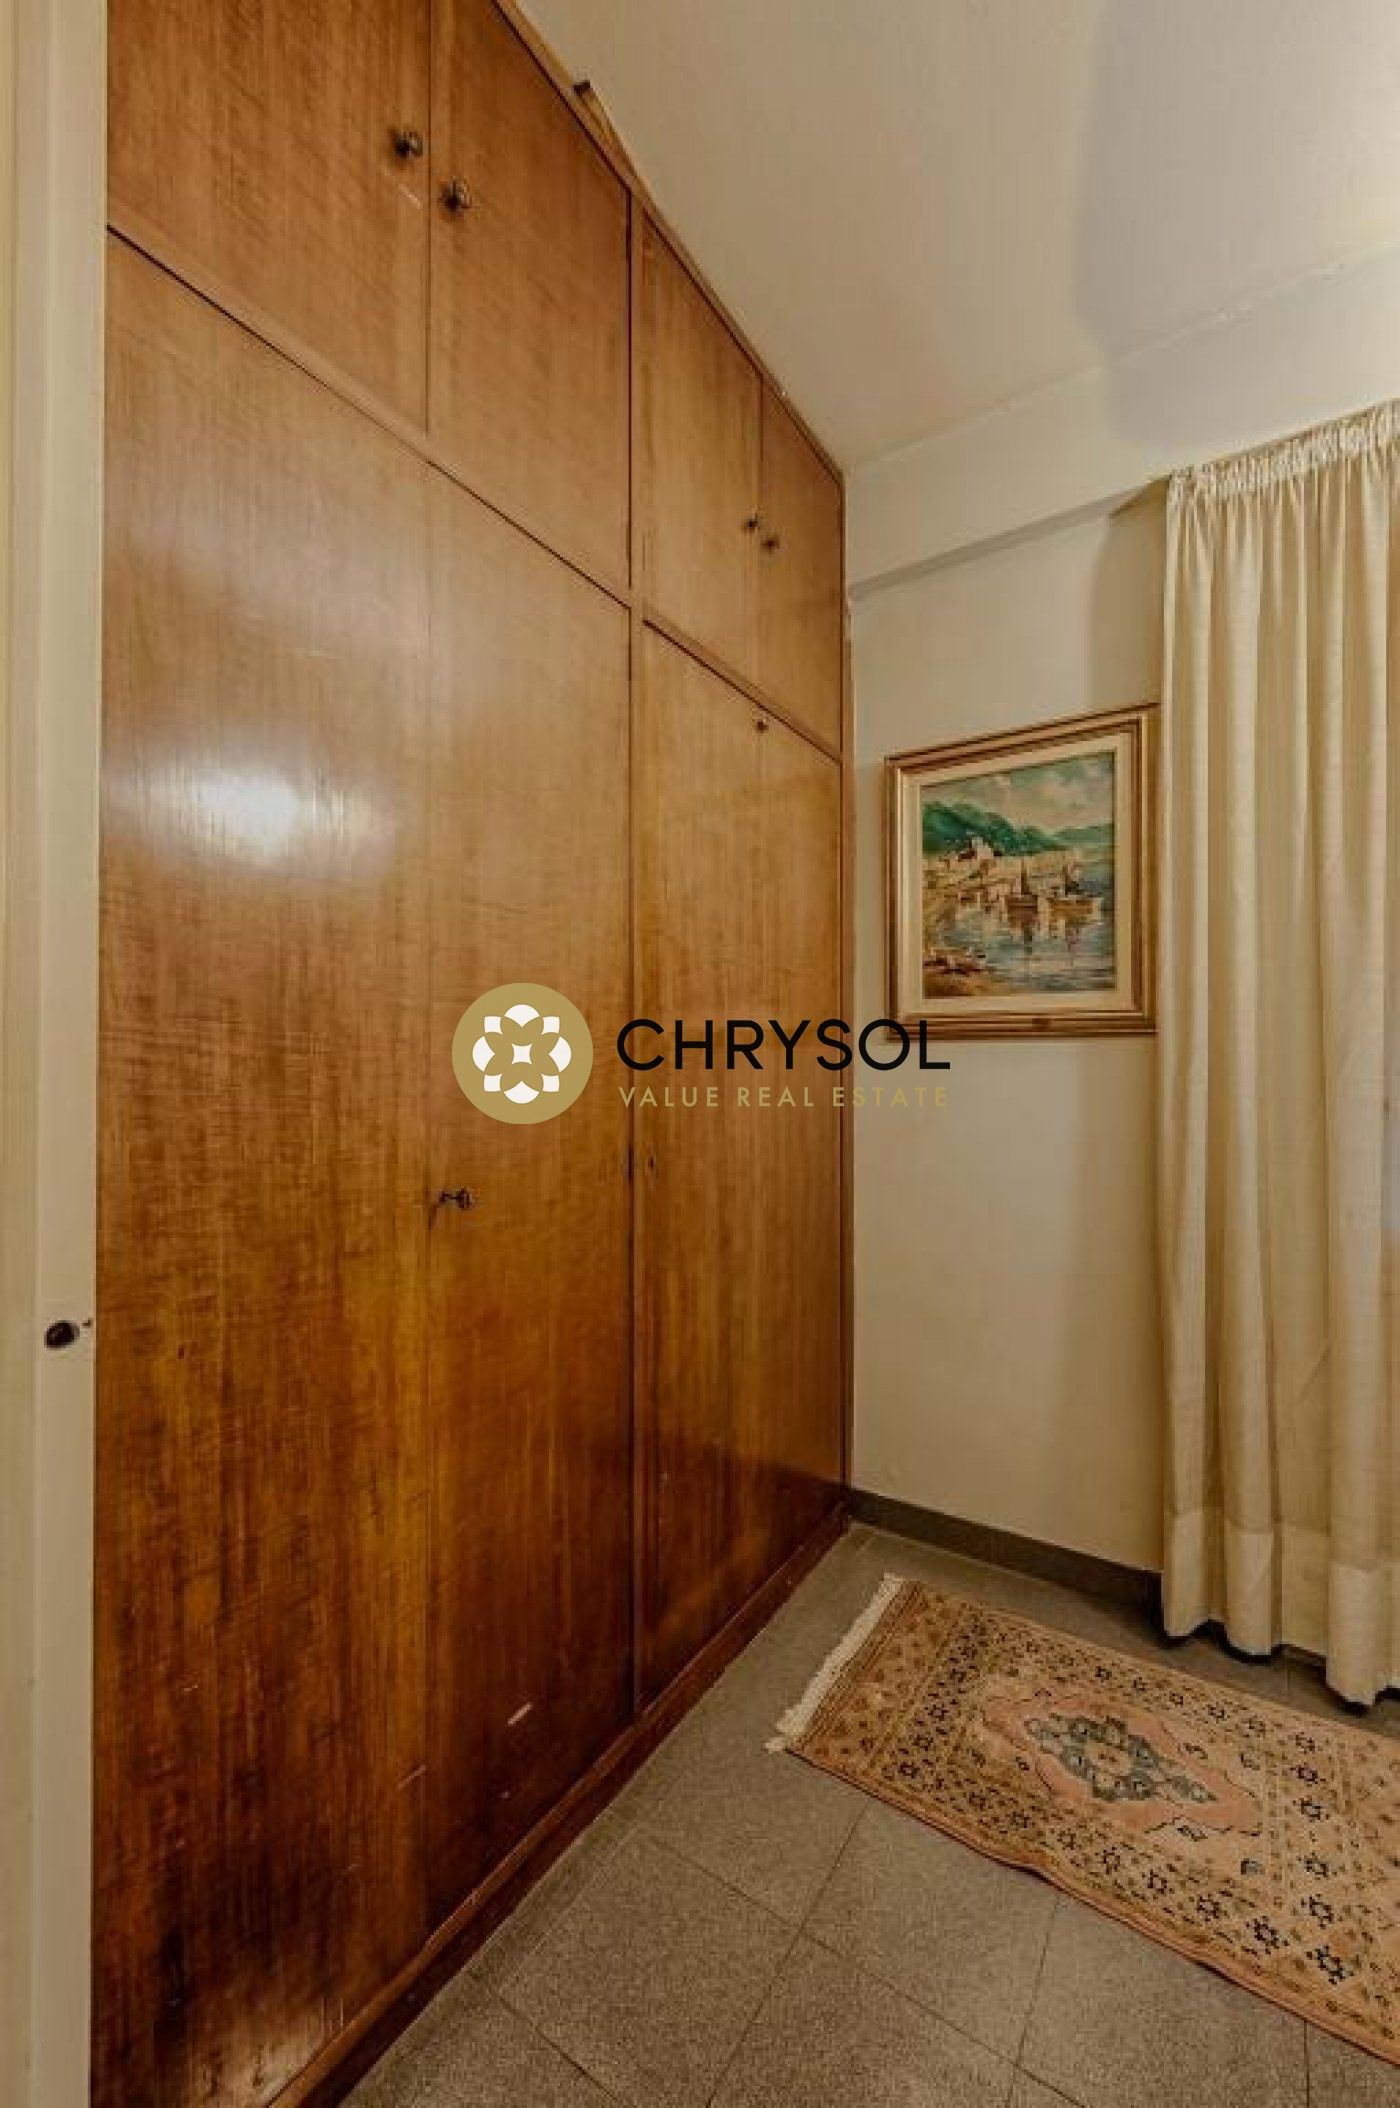 Photogallery - 11 - Chrysol Value